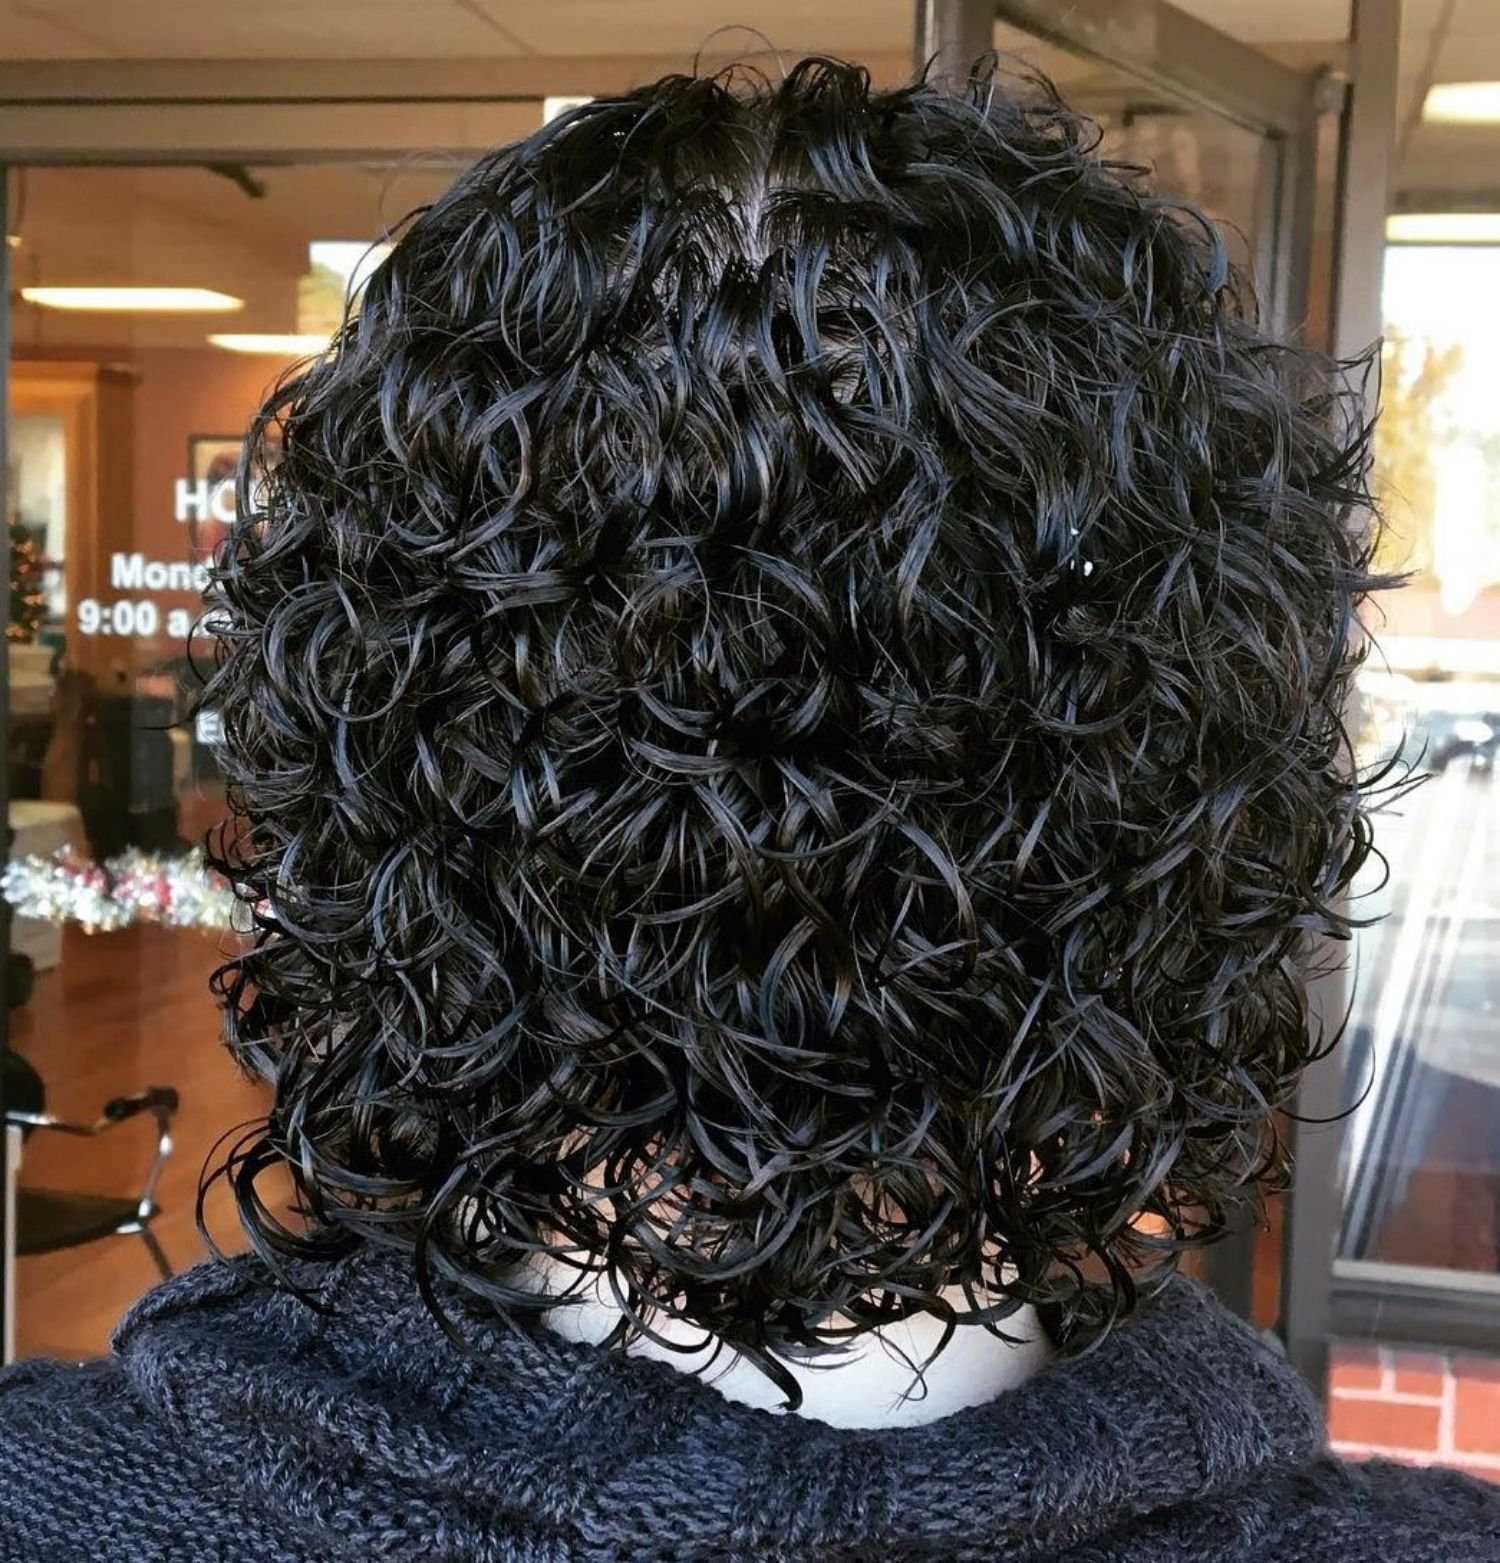 50 Gorgeous Perms Looks Say Hello To Your Future Curls Permed Hairstyles Perm Curls Hair Styles